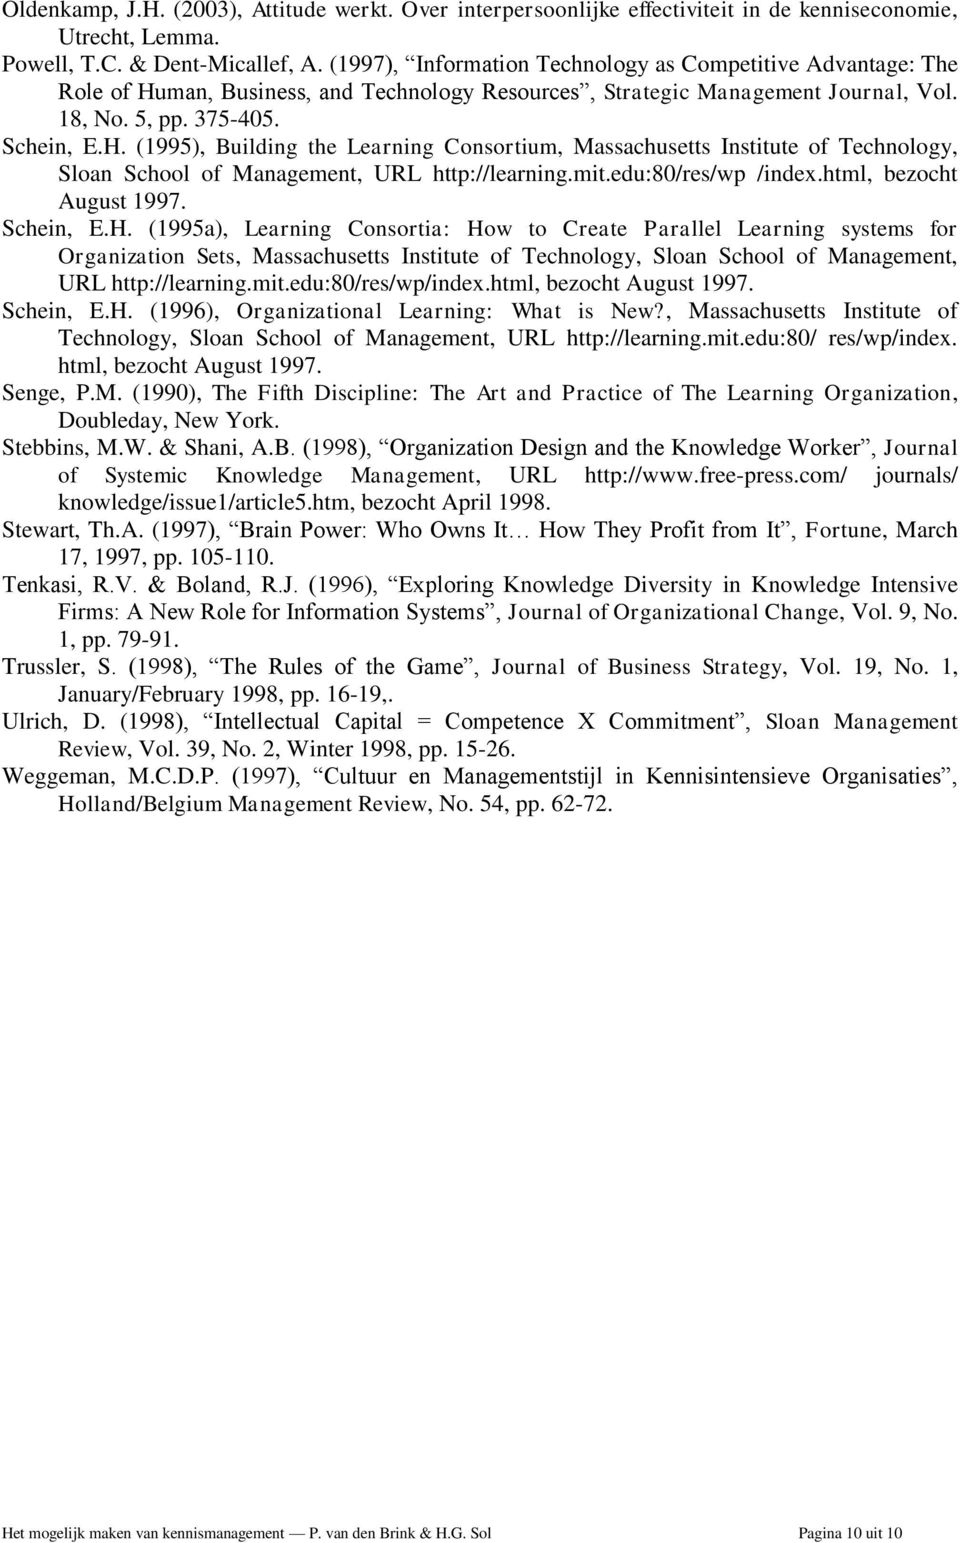 man, Business, and Technology Resources, Strategic Management Journal, Vol. 18, No. 5, pp. 375-405. Schein, E.H.